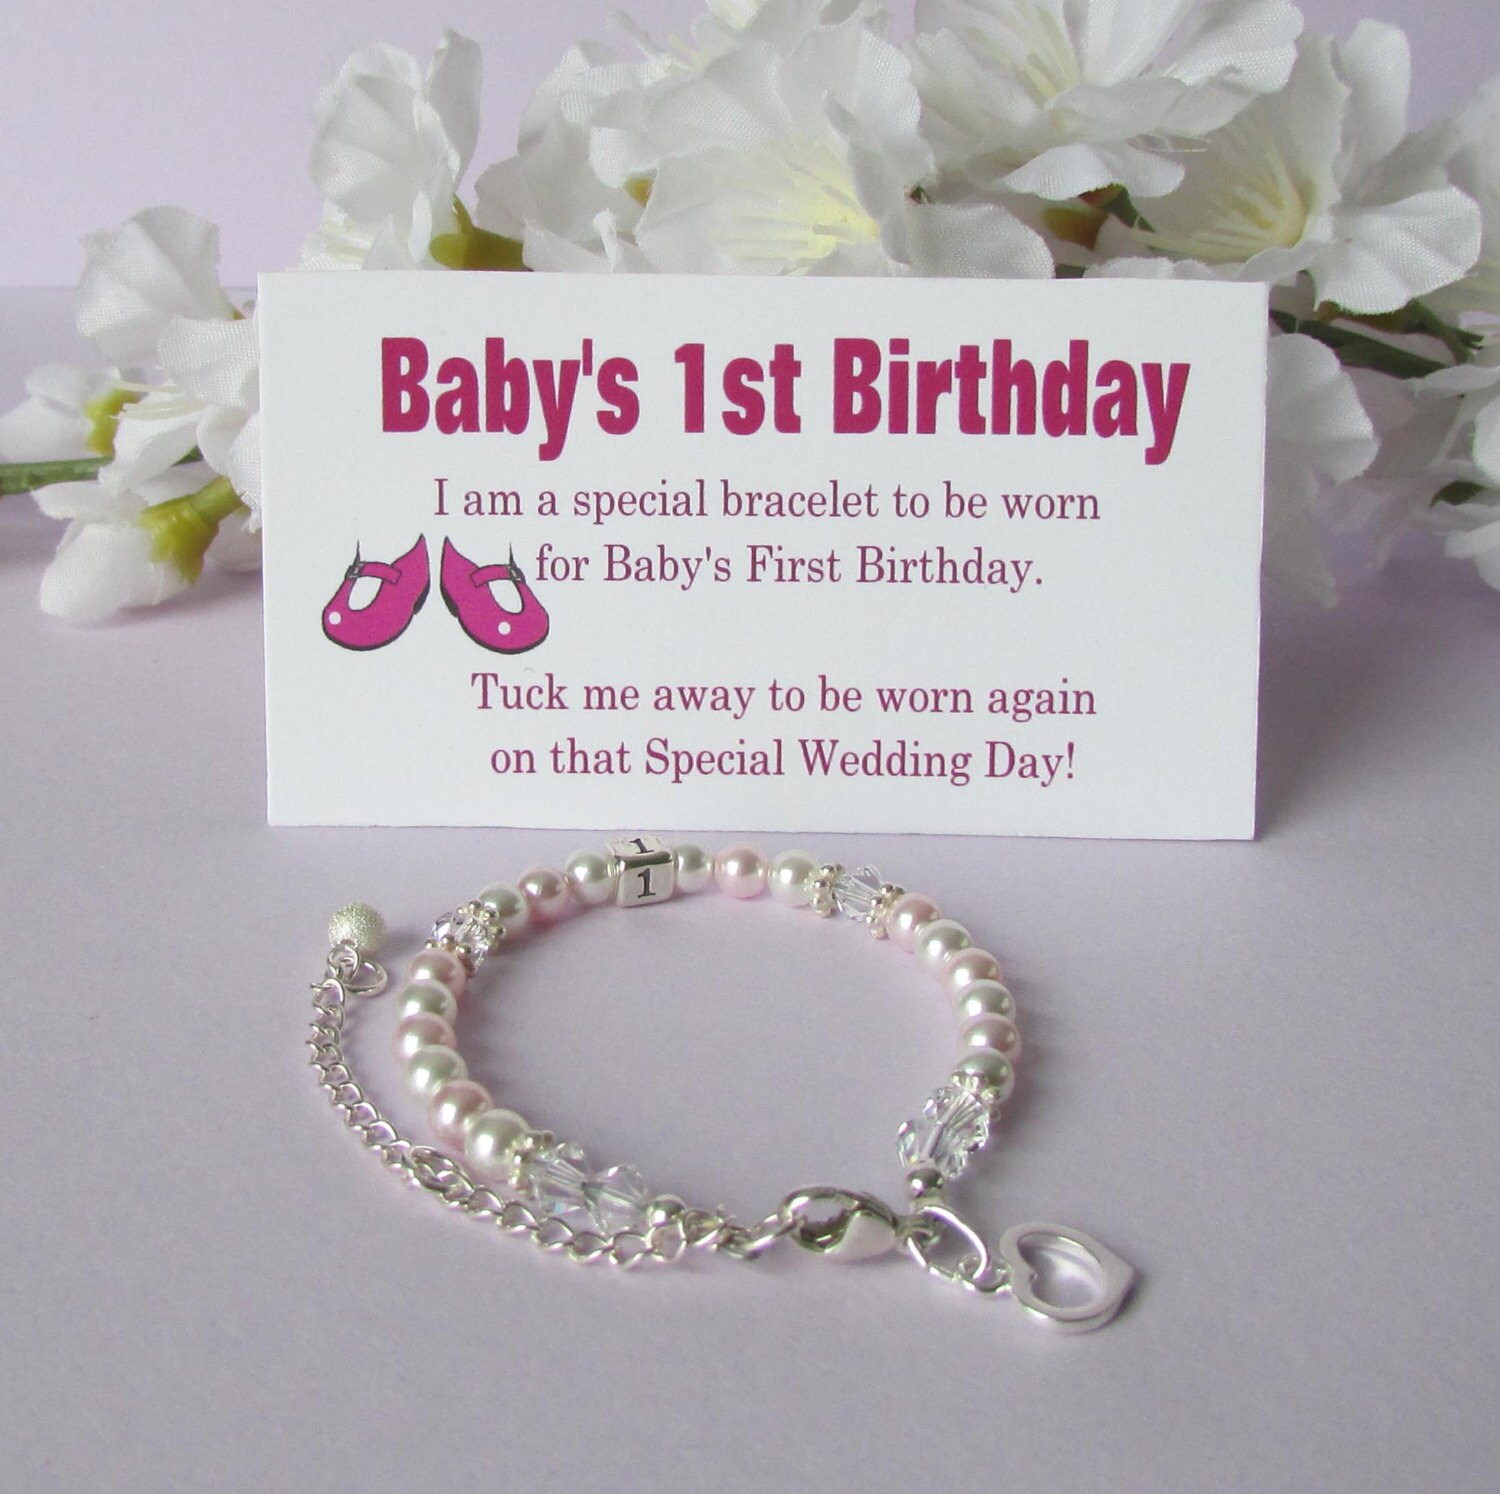 birthday friends on bracelet bracelets for bestfriend gift and friend pinterest fabulous kainsboutique best her images gifts